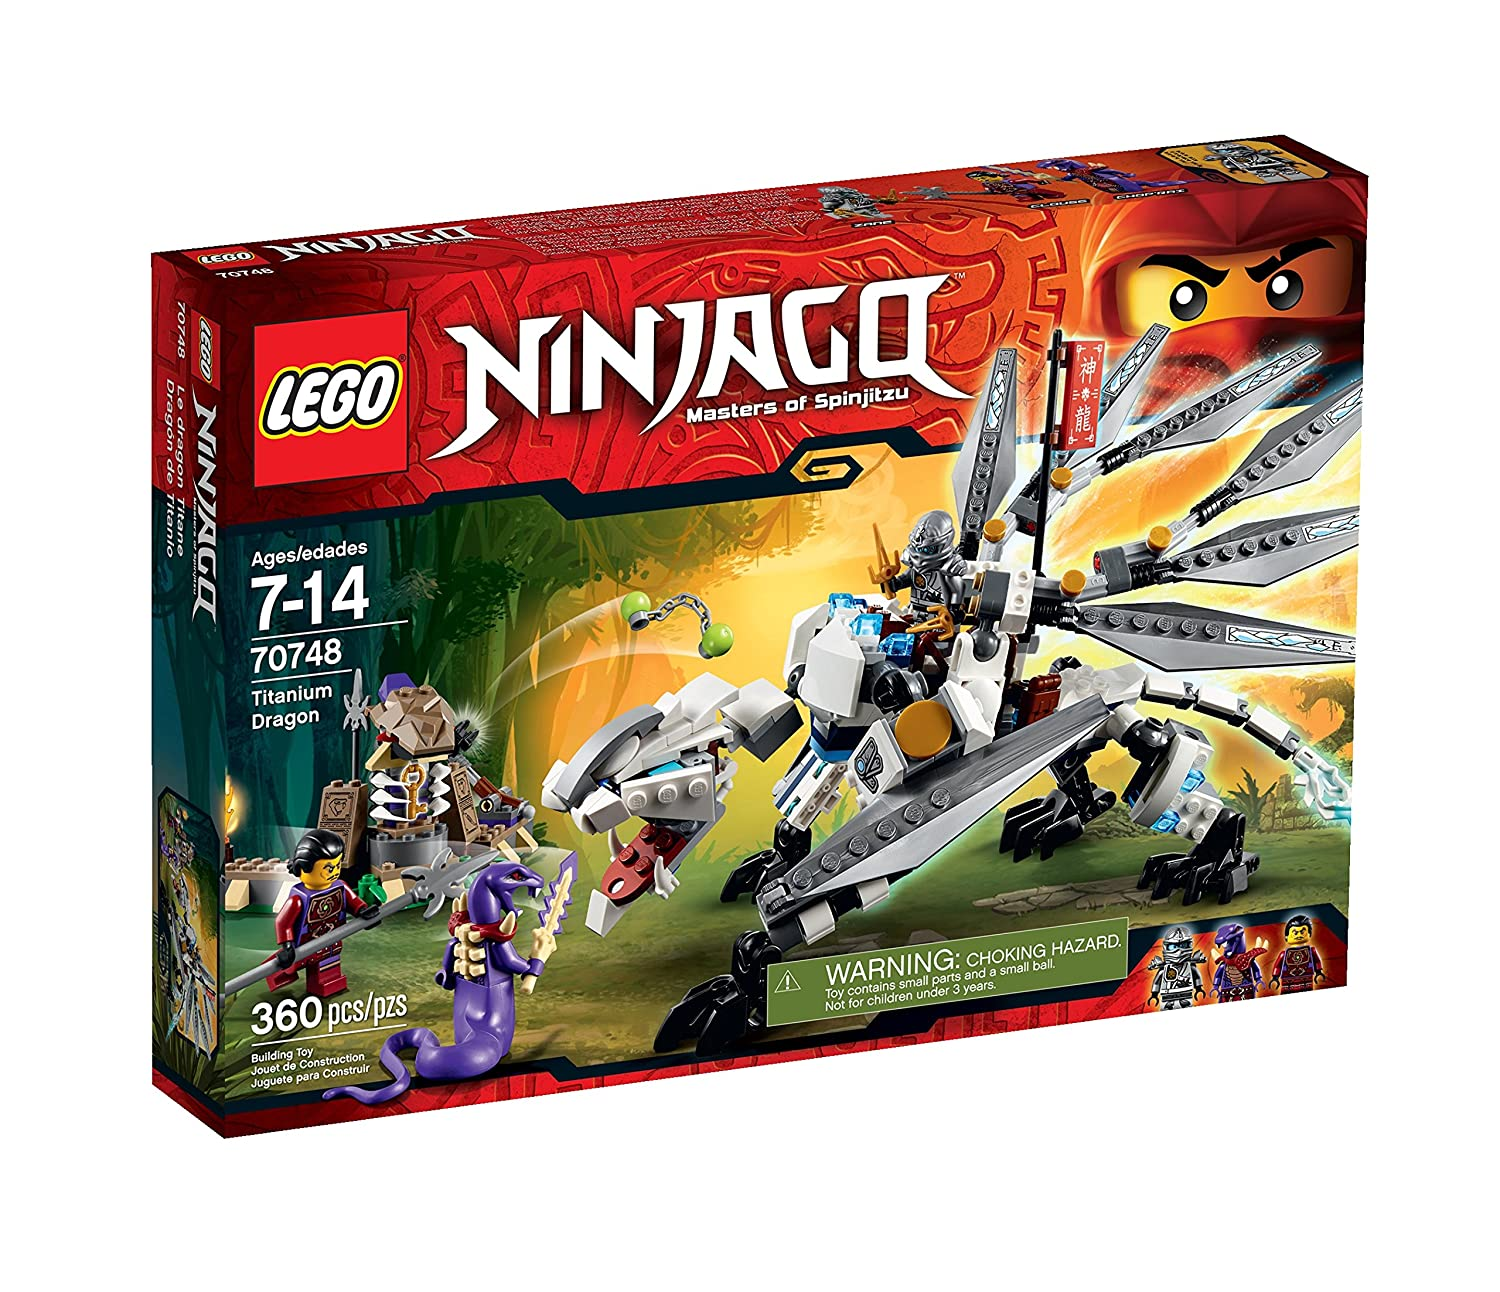 amazoncom lego ninjago titanium dragon toy discontinued by manufacturer toys games